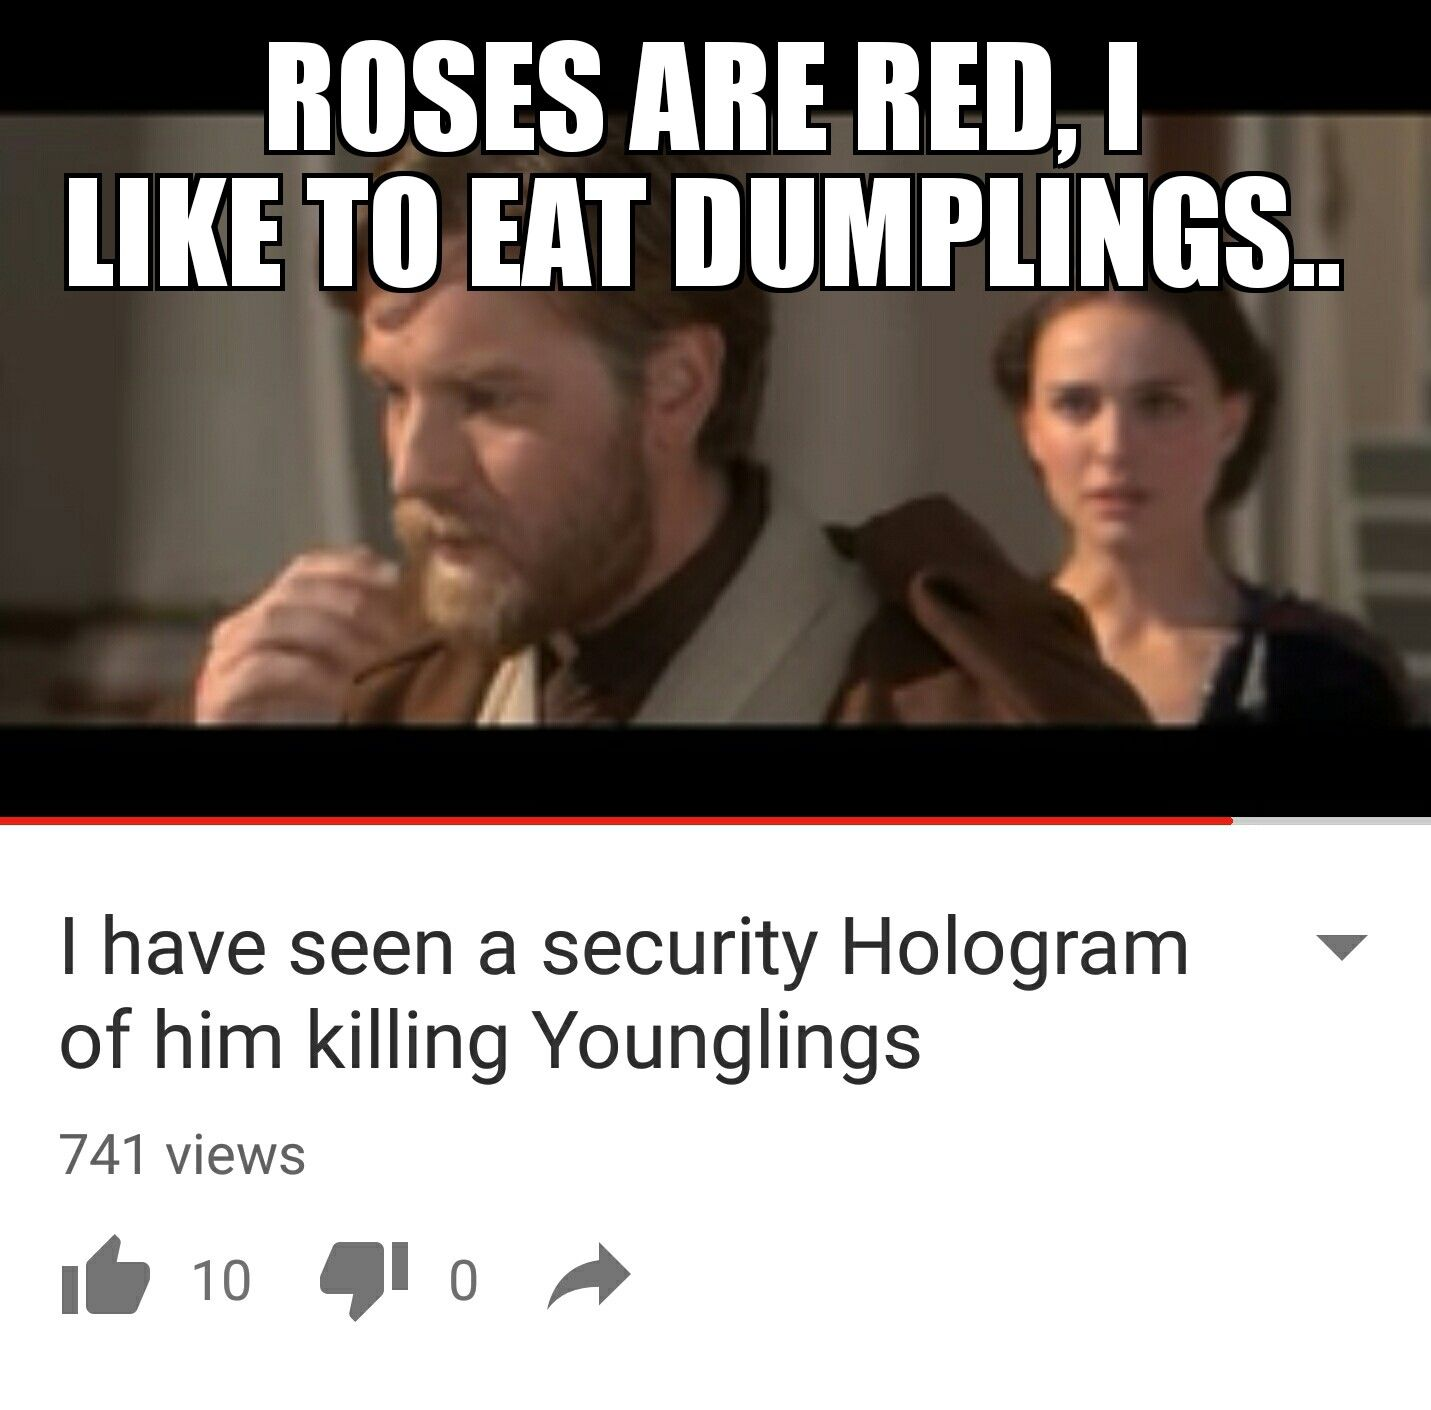 Roses Are Red I Like To Eat Dumplings I Have Seen A Security Holograph Of Him Killings Younglings Star Wars Humor Star Wars Facts Funny Star Wars Memes